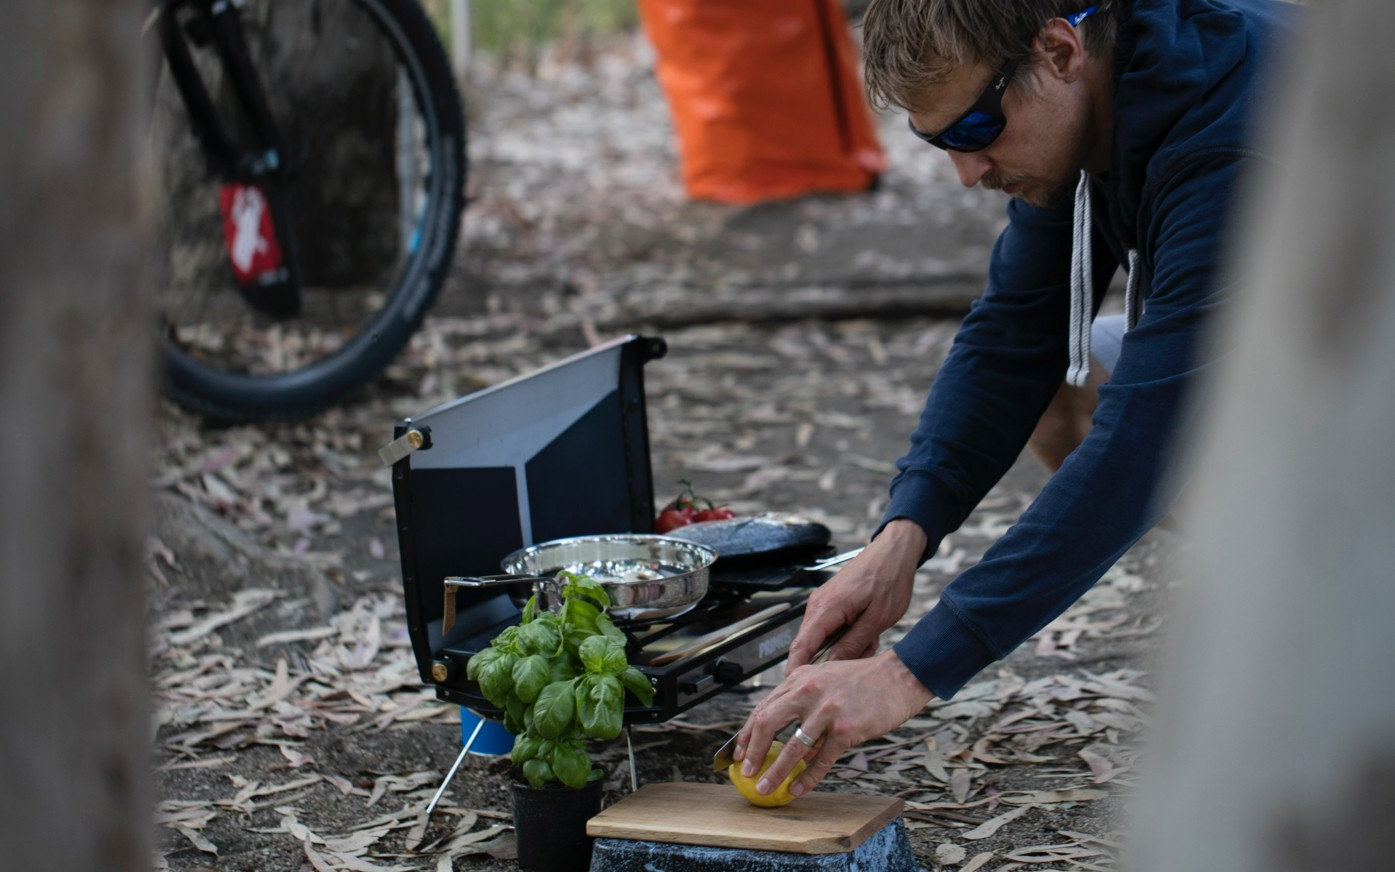 PRIMUS OUTDOOR COOKING - FREEDOM TO EXPLORE GUARANTEED